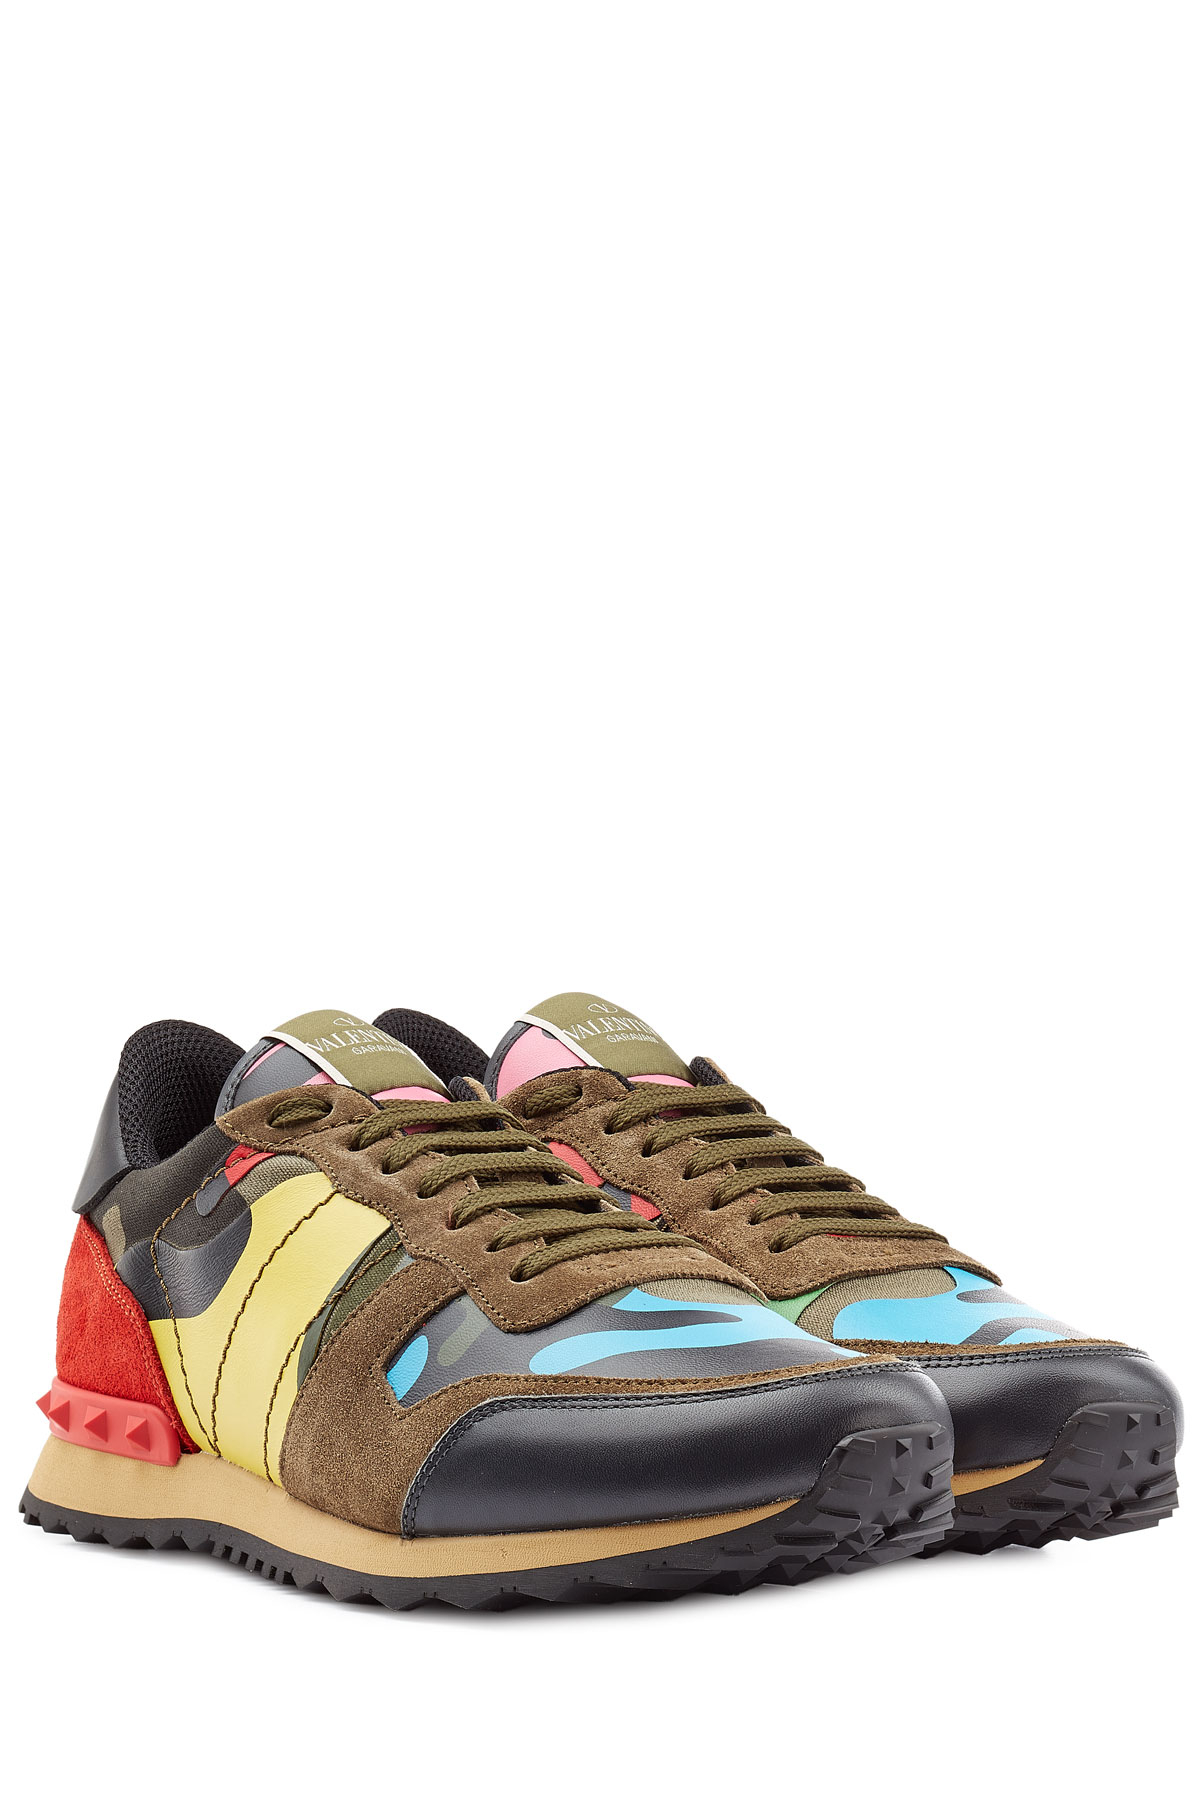 Valentino Camouflage Sneakers In Green For Men Lyst